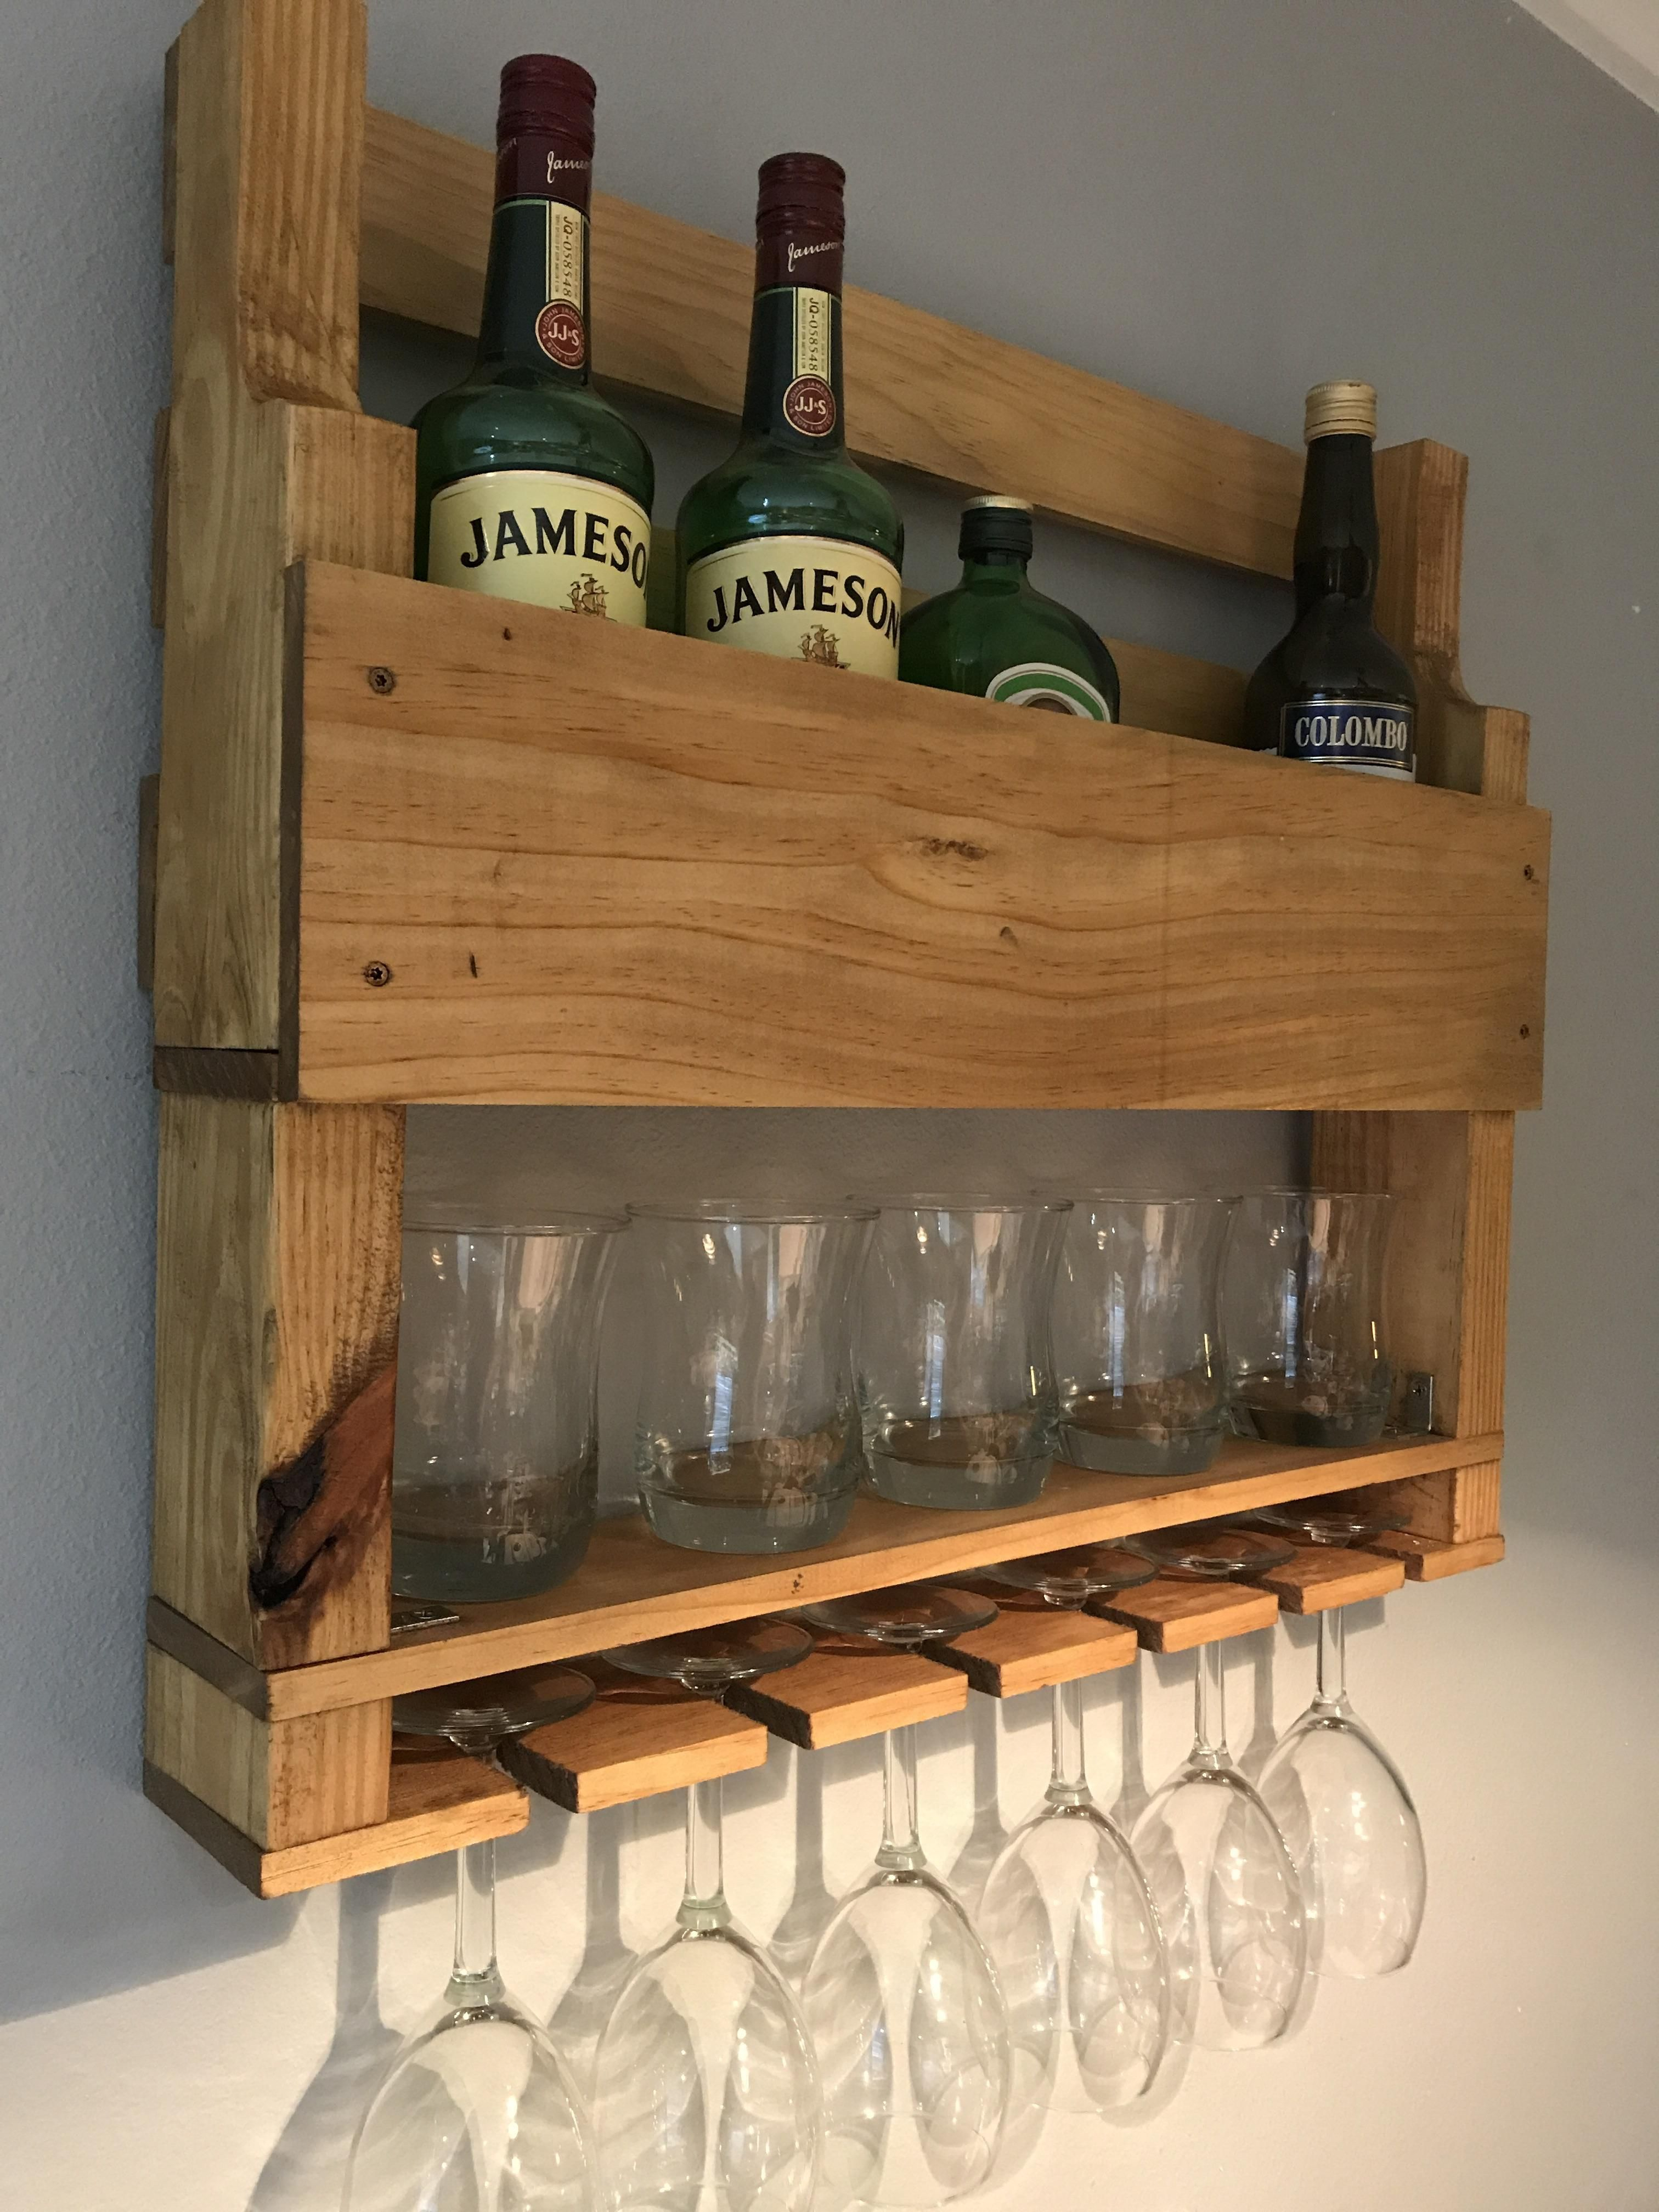 My First Project Was Also A Wine Whiskey Rack Http Ift Tt